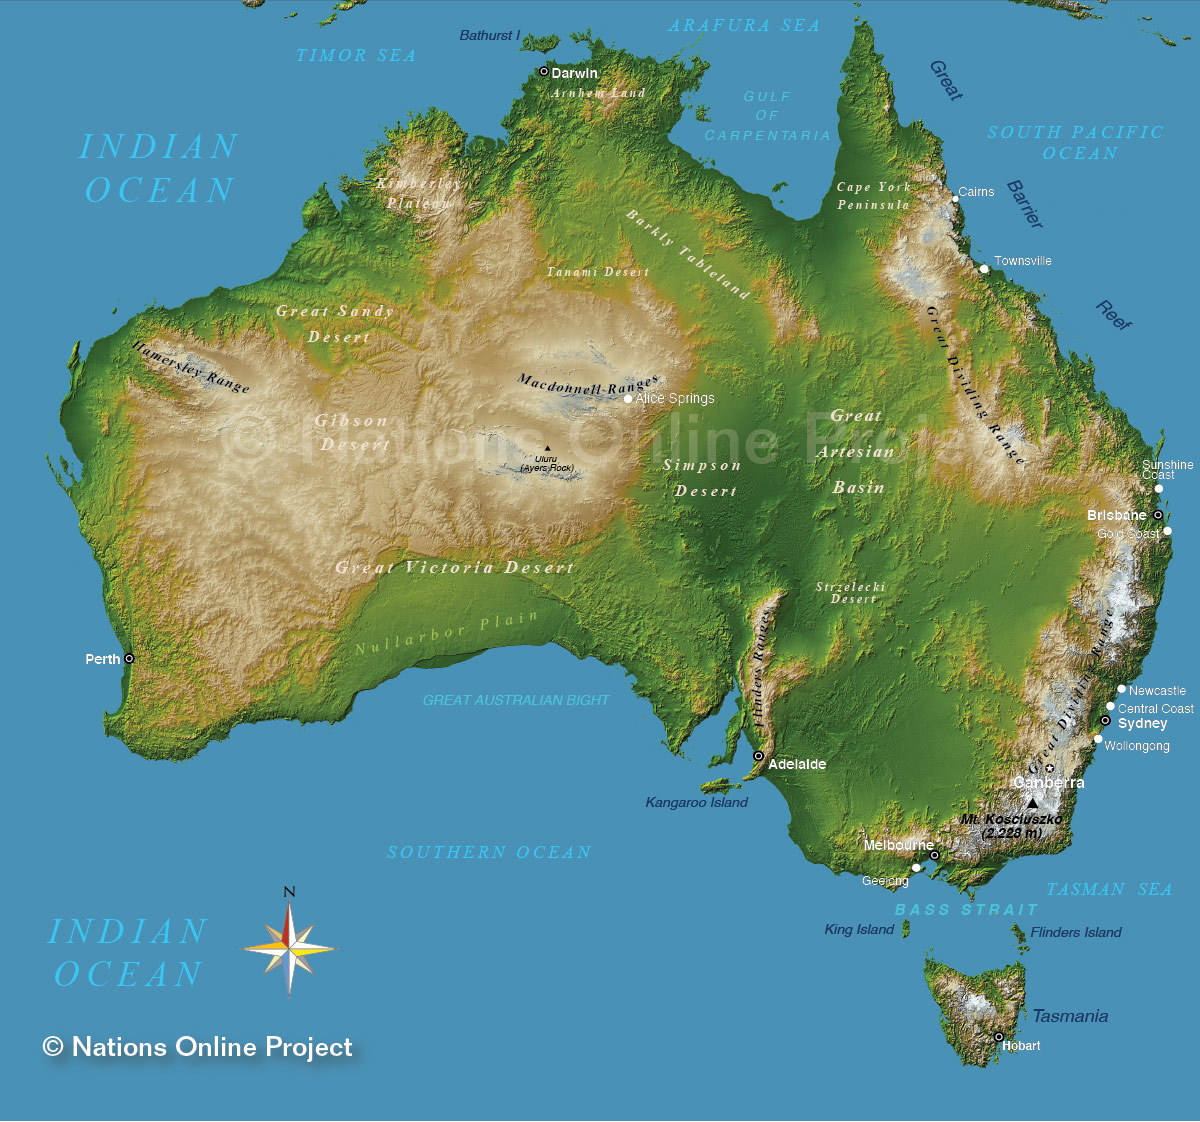 Topographic Map of Australia - Nations Online Project on mckinley mountain, elbrus mountain, shishapangma mountain, everest mountain, hamilton mountain, aconcagua mountain,